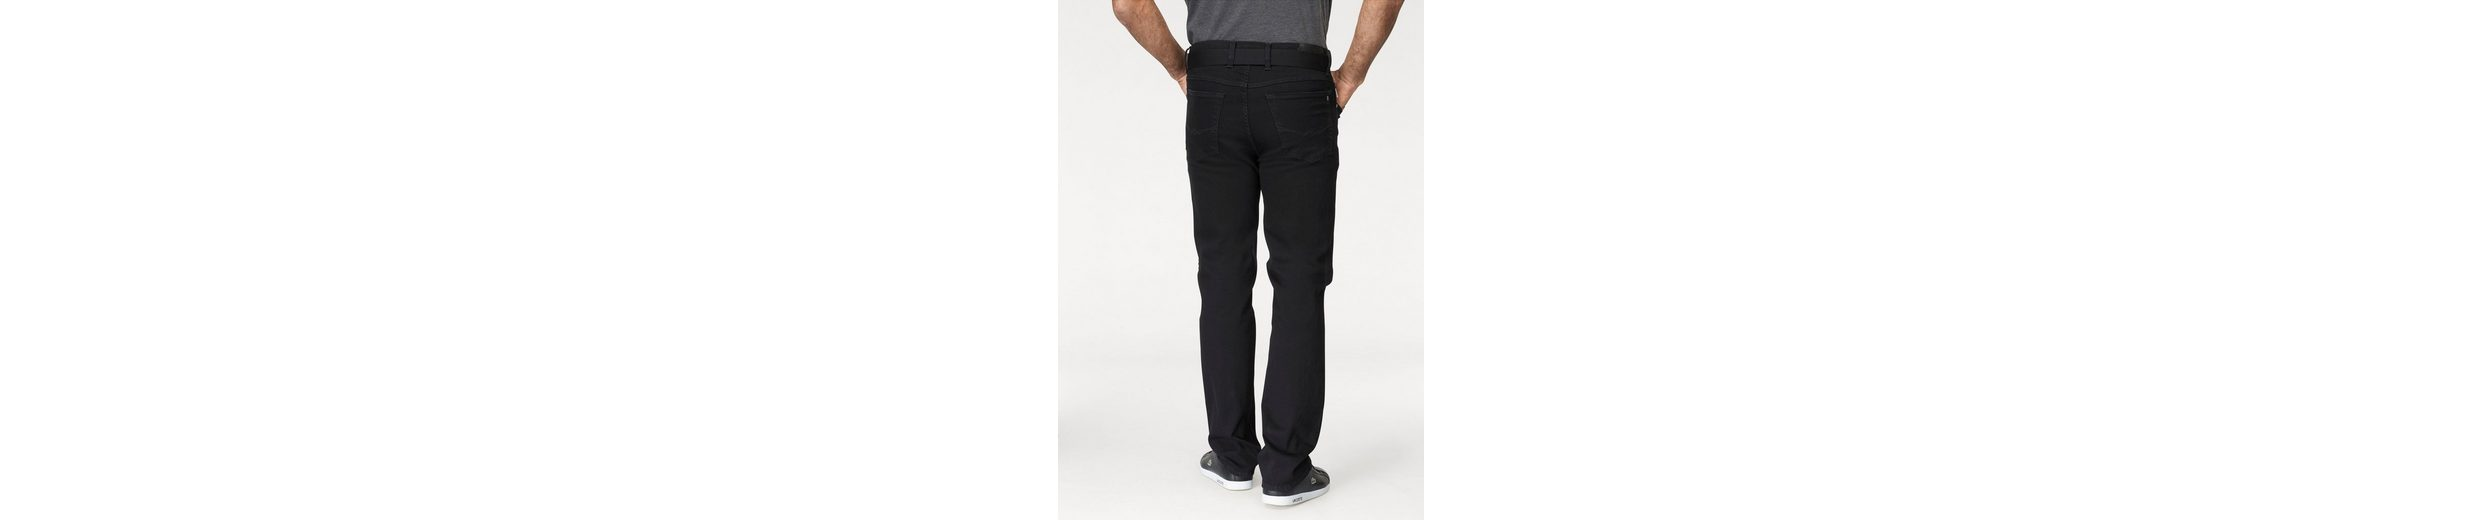 Pionier Stretch Peter Comfort Stretch Pure Pionier Peter Pure Jeans Jeans Stretch Pionier Comfort vvw7Or8